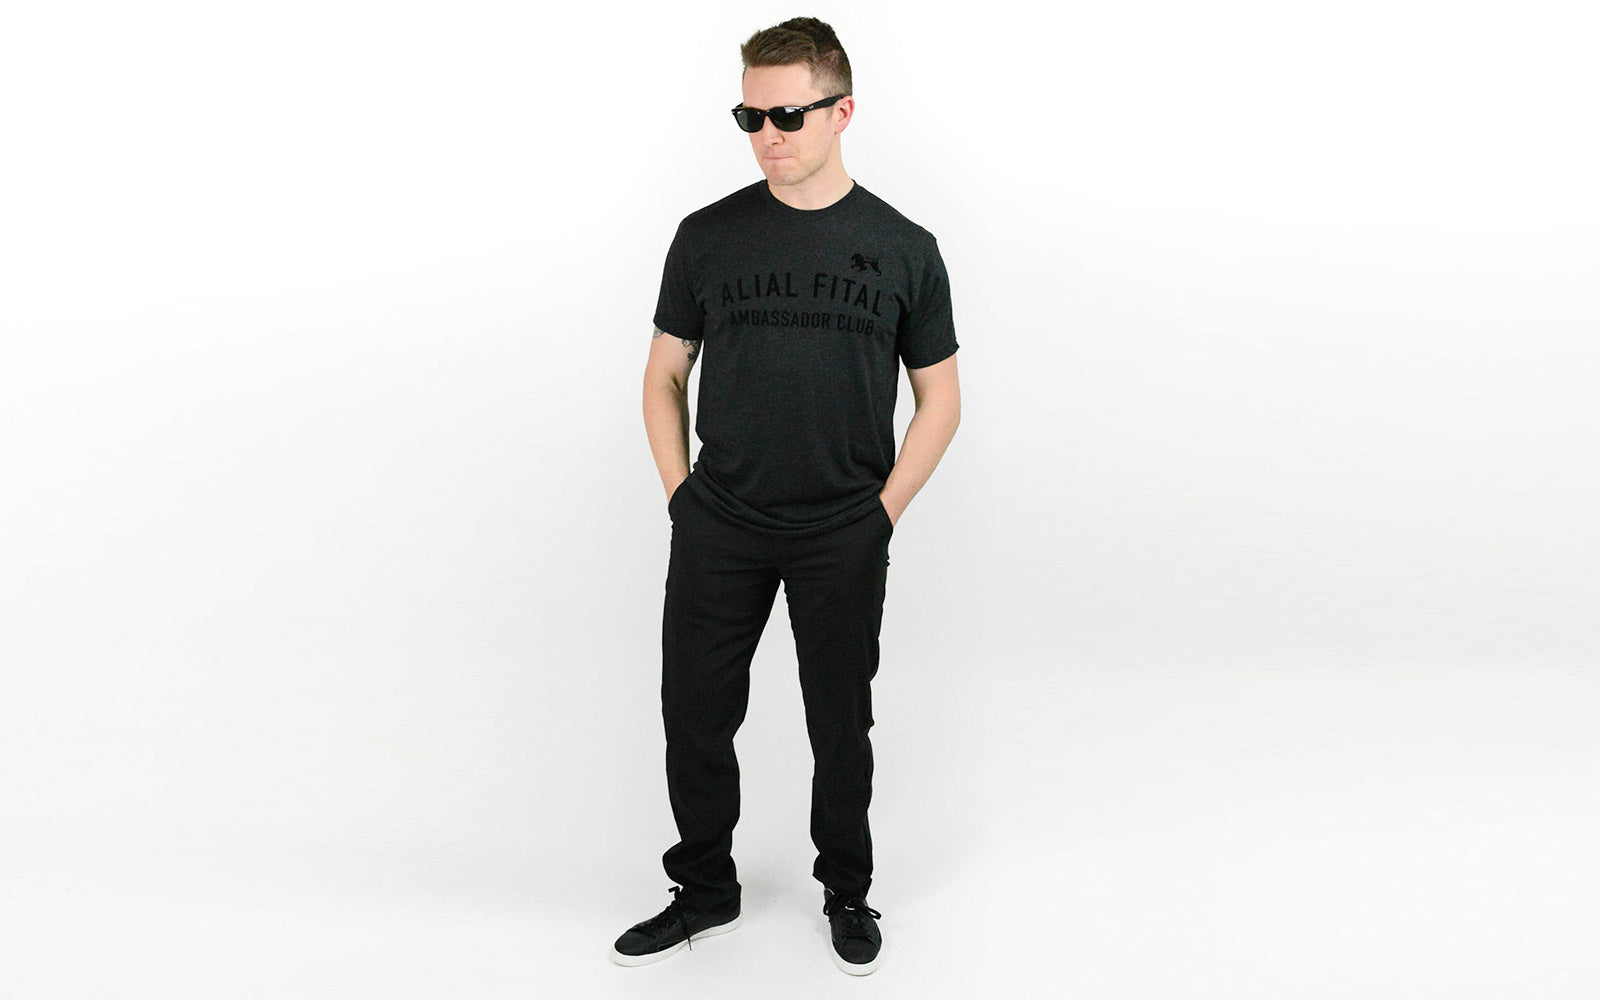 Black tshirts made in USA for luxury menswear, Alial Fital